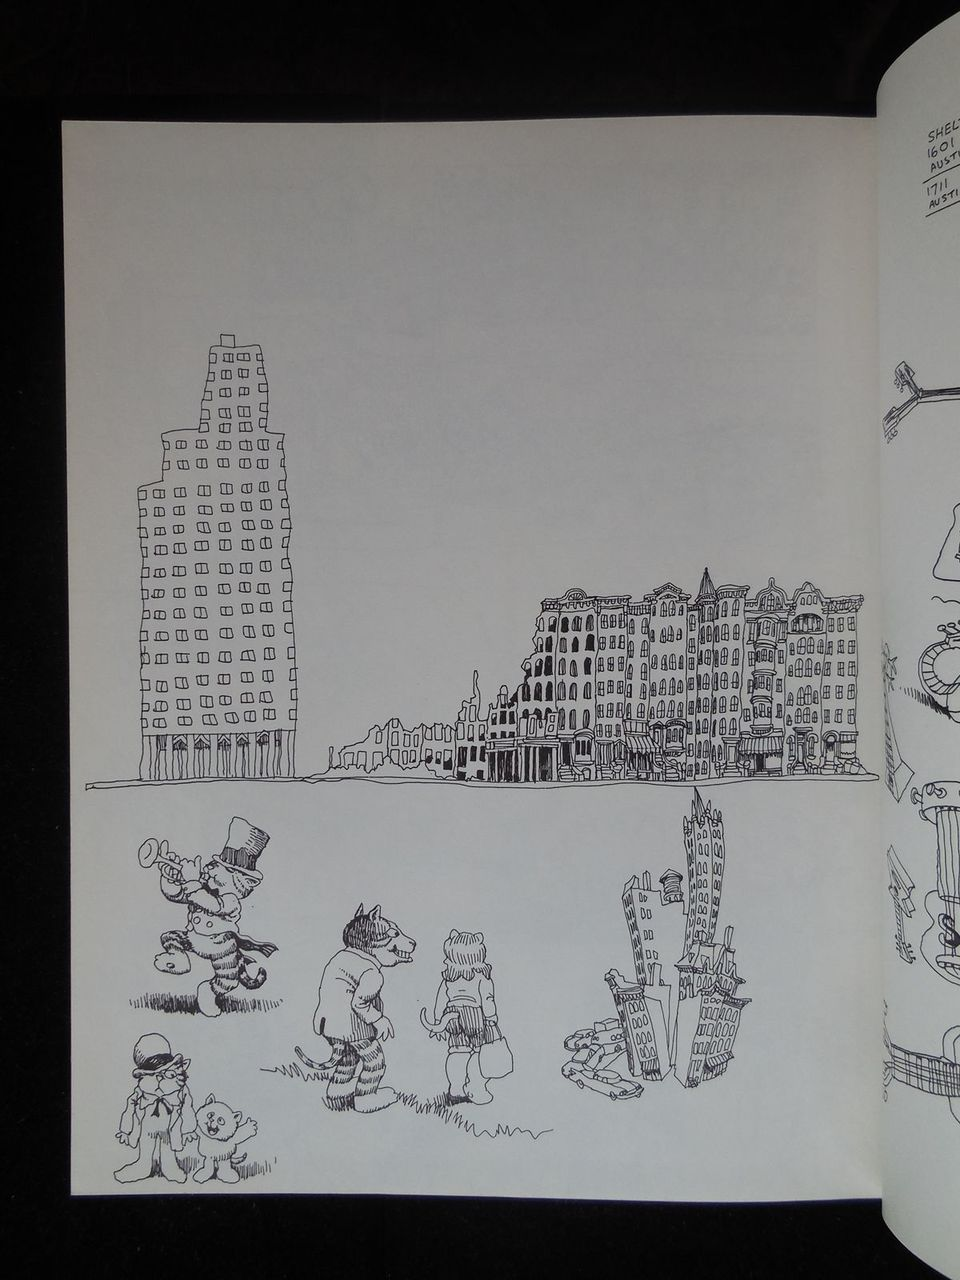 R. CRUMB SKETCHBOOK of Comic Satire 1964-1965 [Vol 1] American 1992 HB Scarce